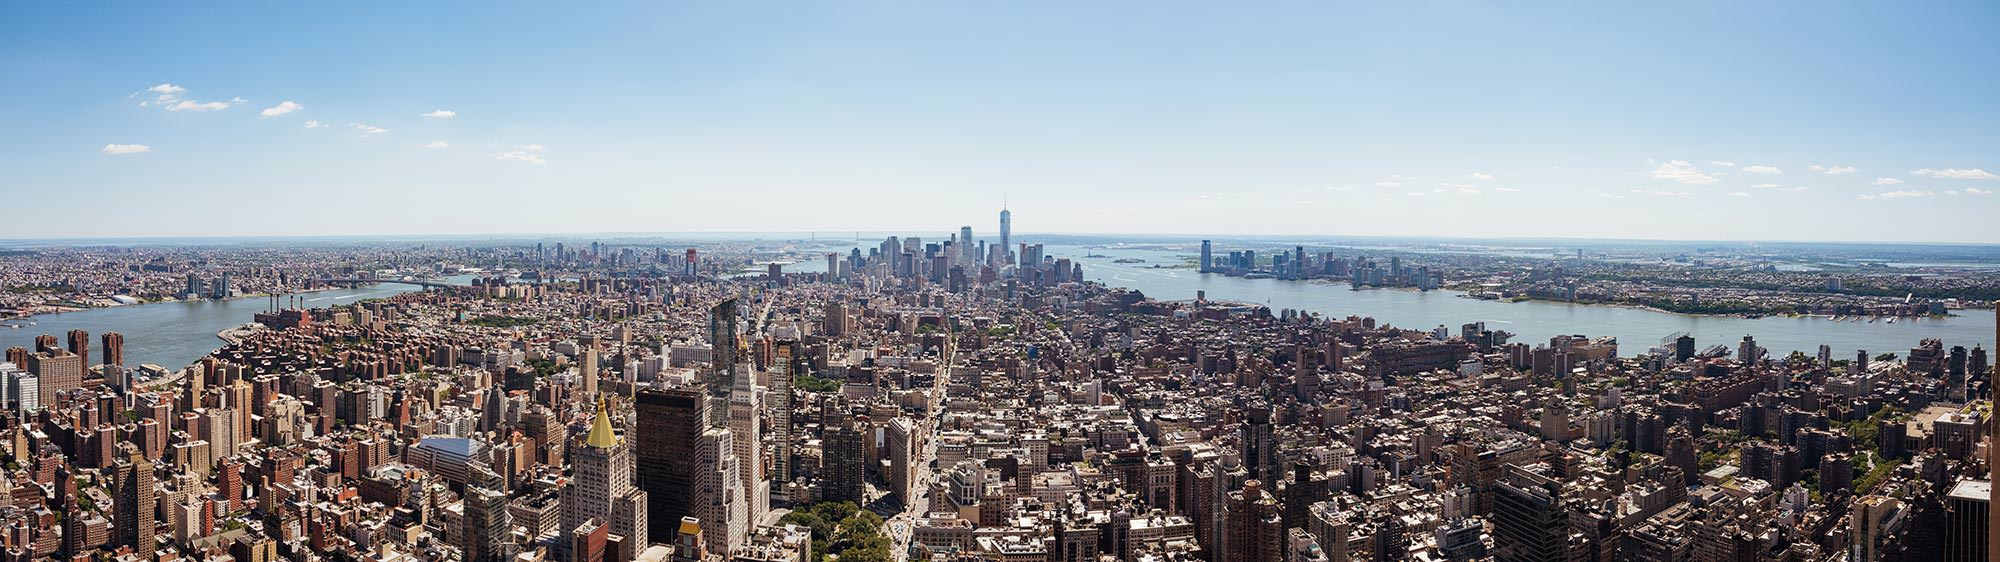 Overview New York from Empire State Building